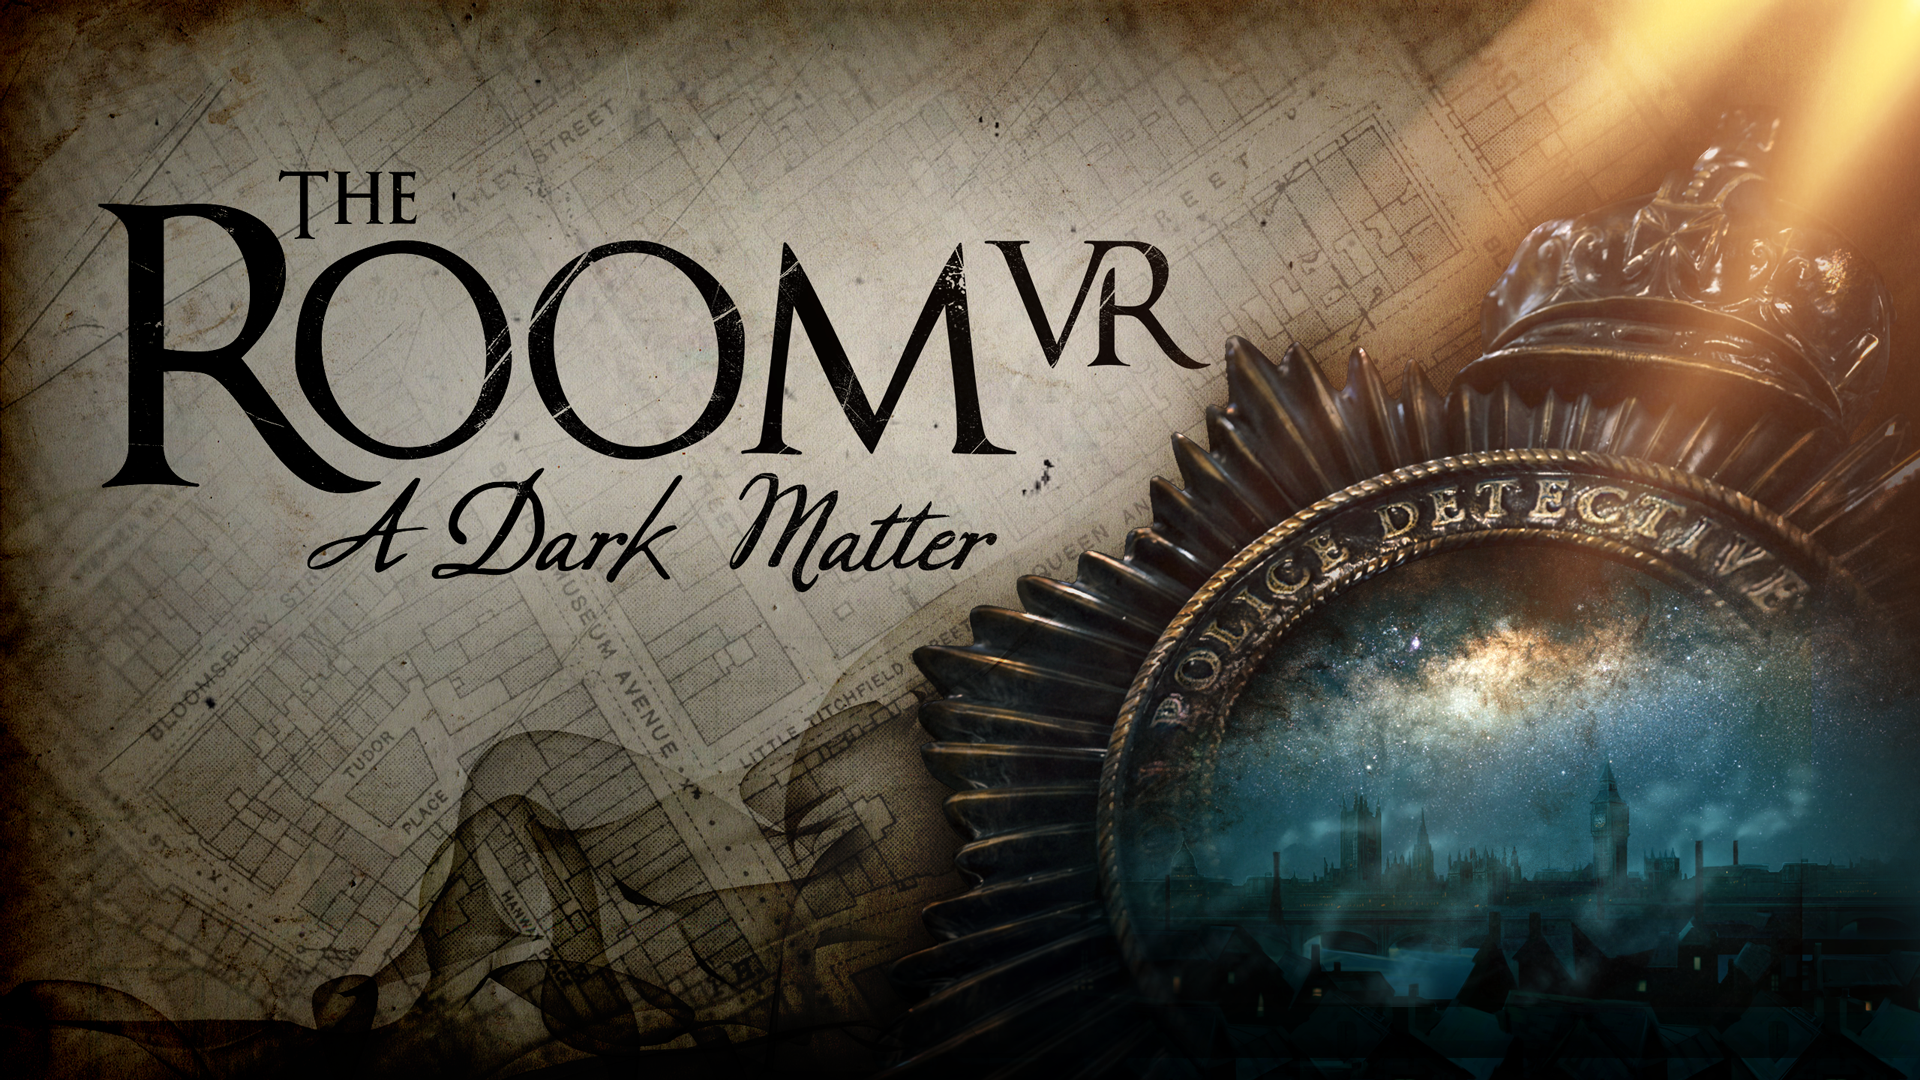 The Room VR A Dark Matter adventure virtual reality game 2020